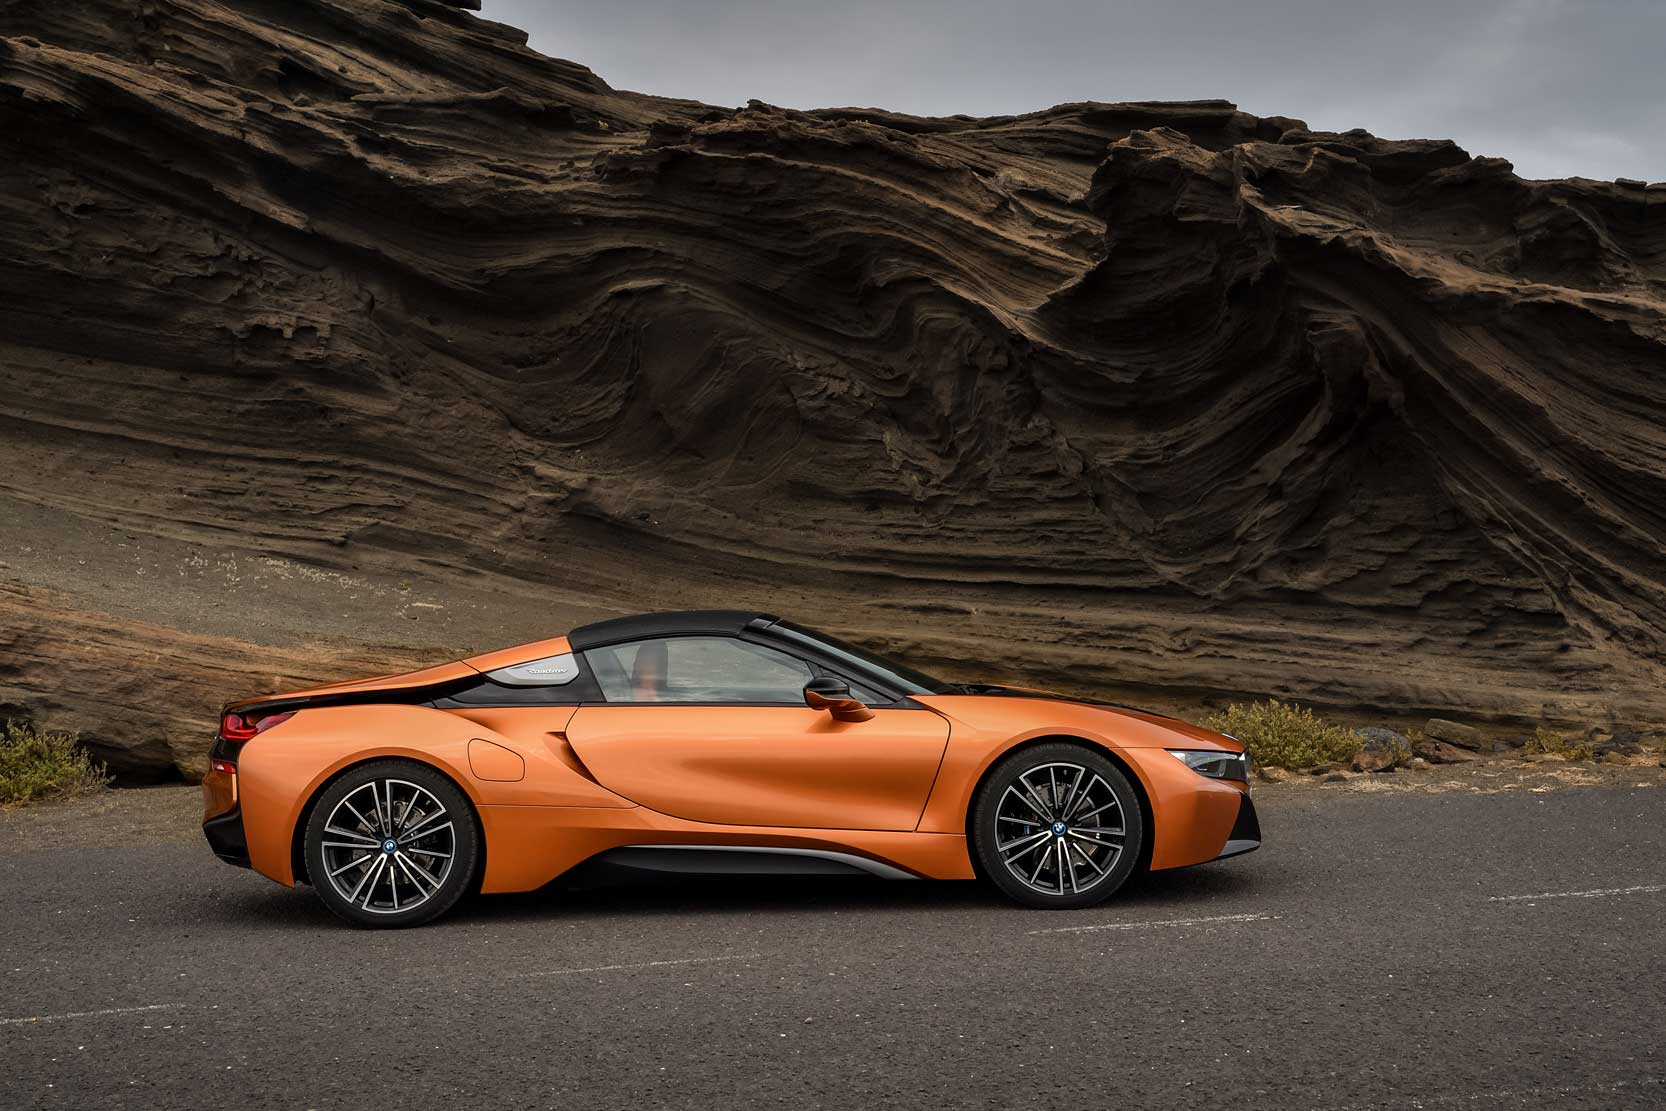 Exterieur_Bmw-i8-Roadster_3